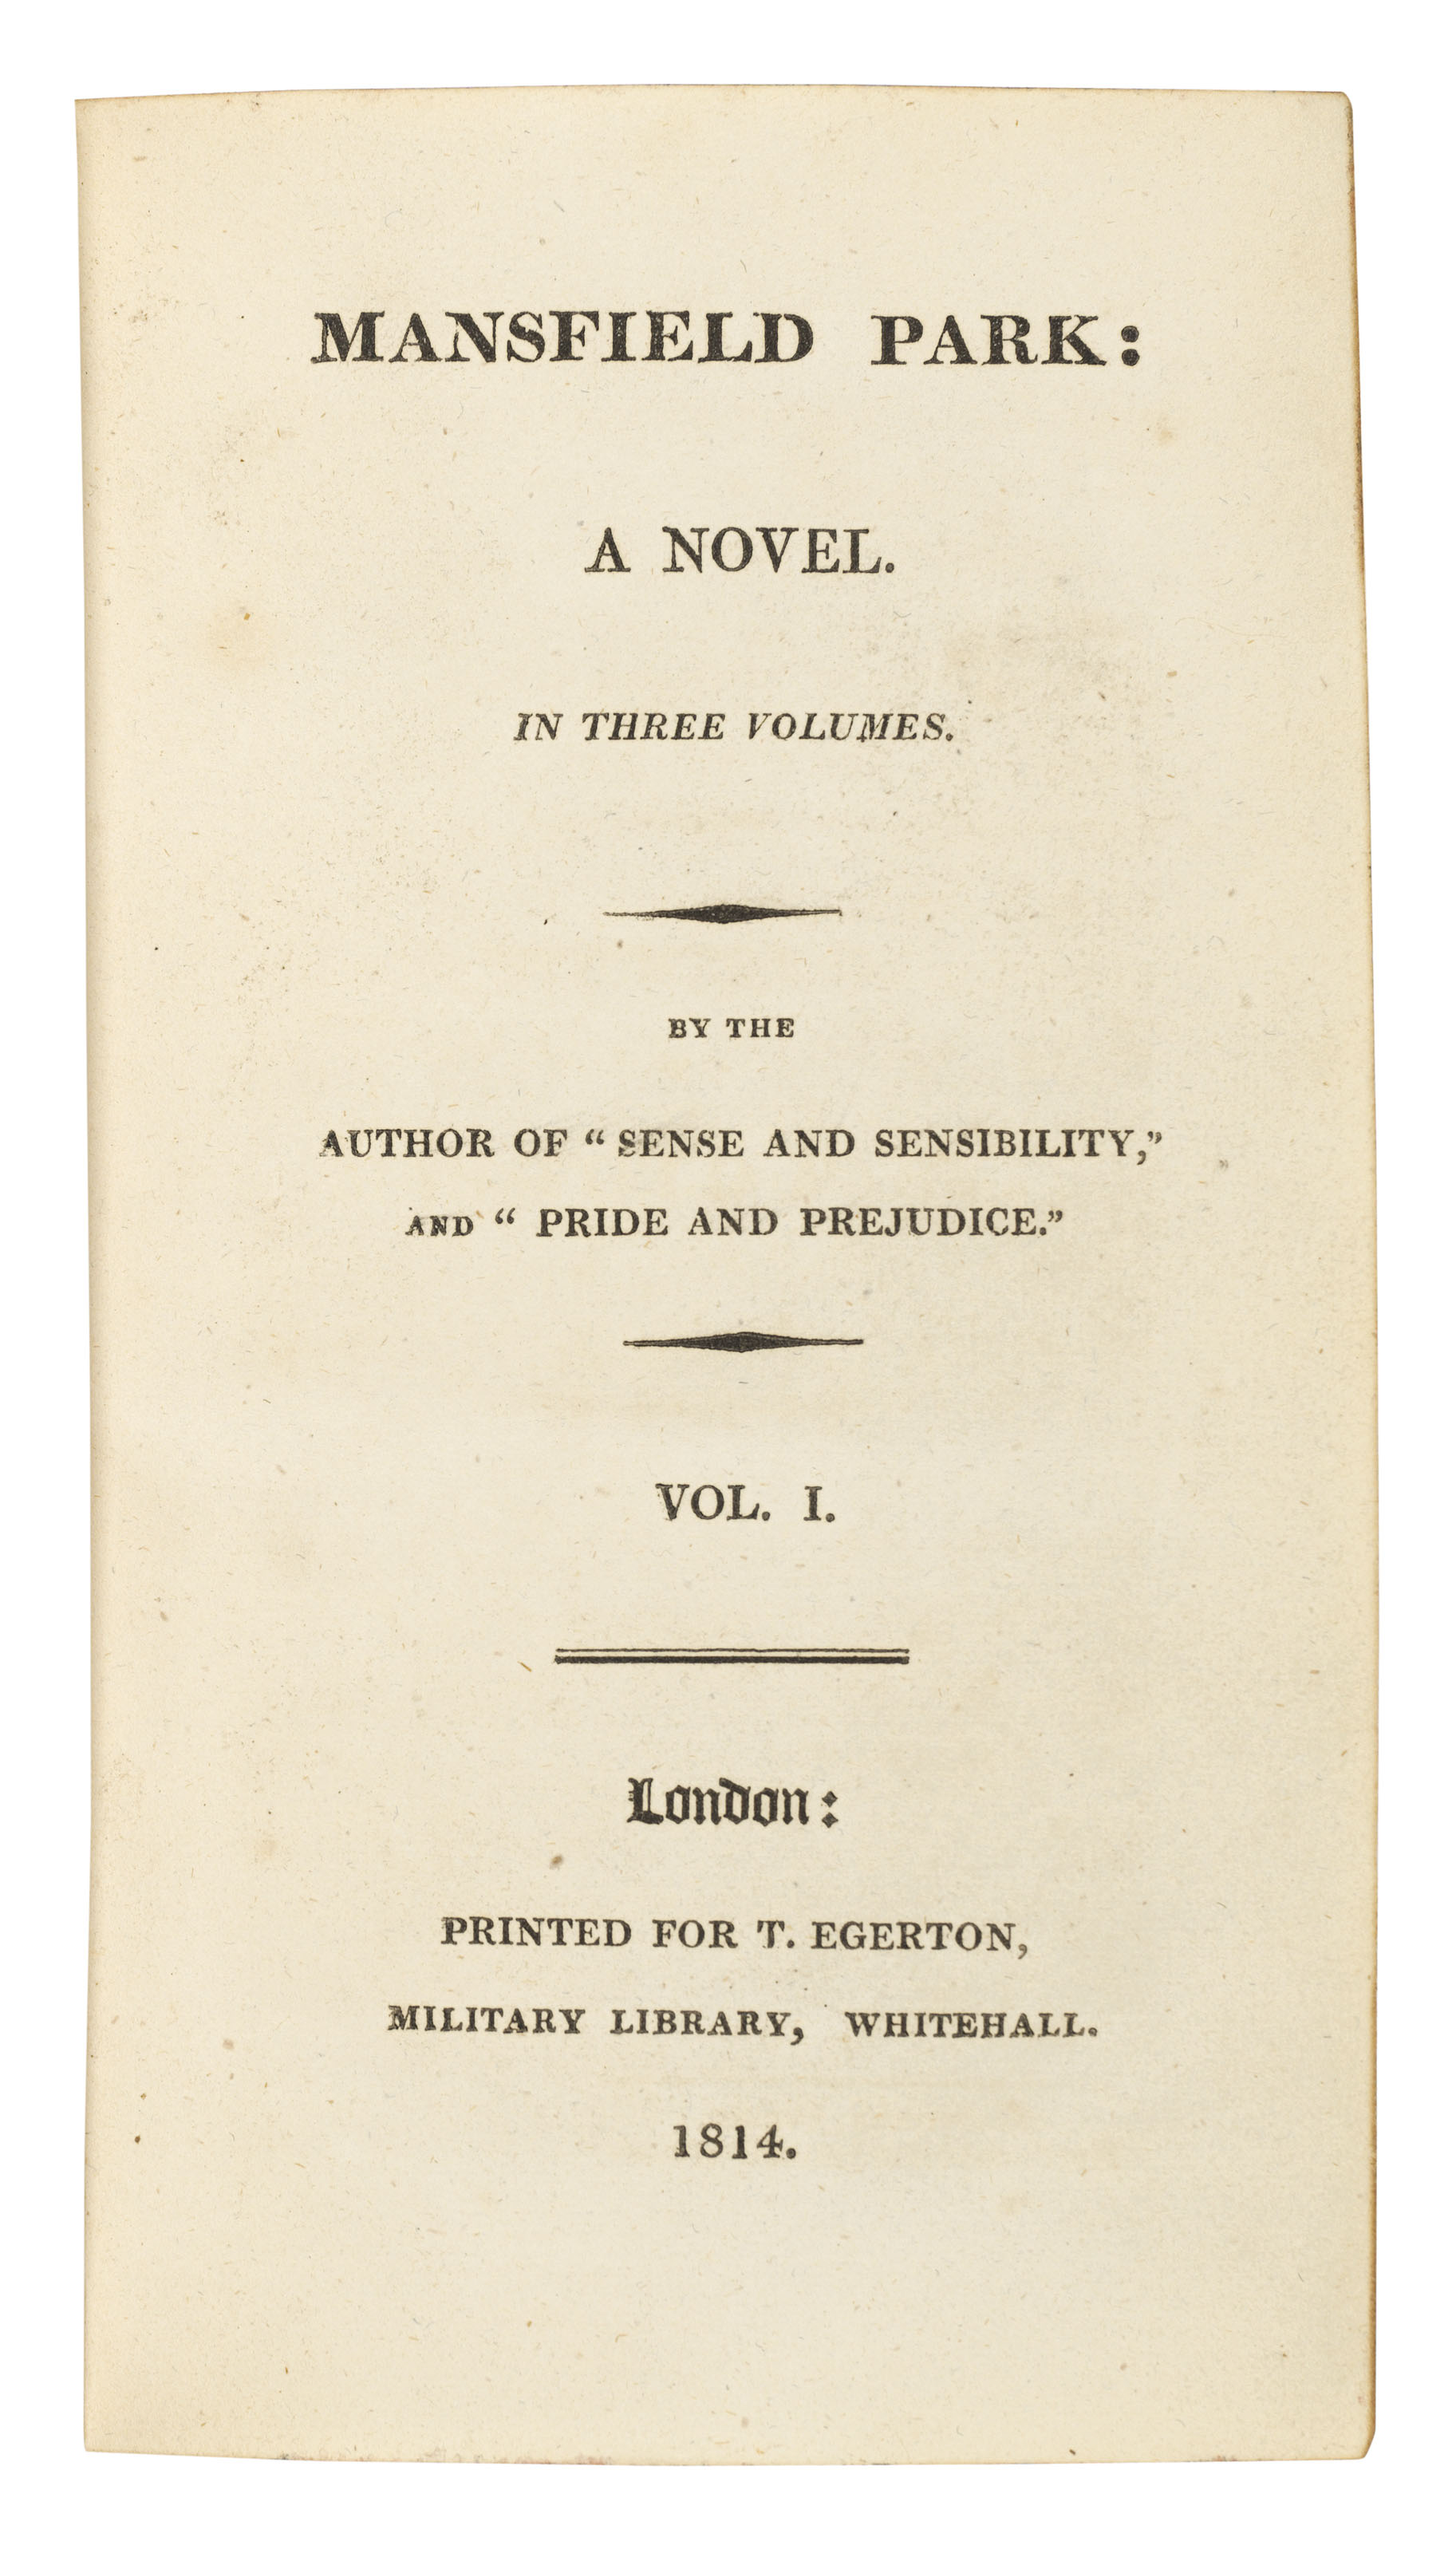 AUSTEN, Jane (1775-1817). Sense and Sensibility ... second edition. London: for the author by C. Roworth and published by T. Egerton, 1813. 3 volumes. (Lacks half-titles and final blanks, some browning and staining.) Gilson A2; Keynes 2.